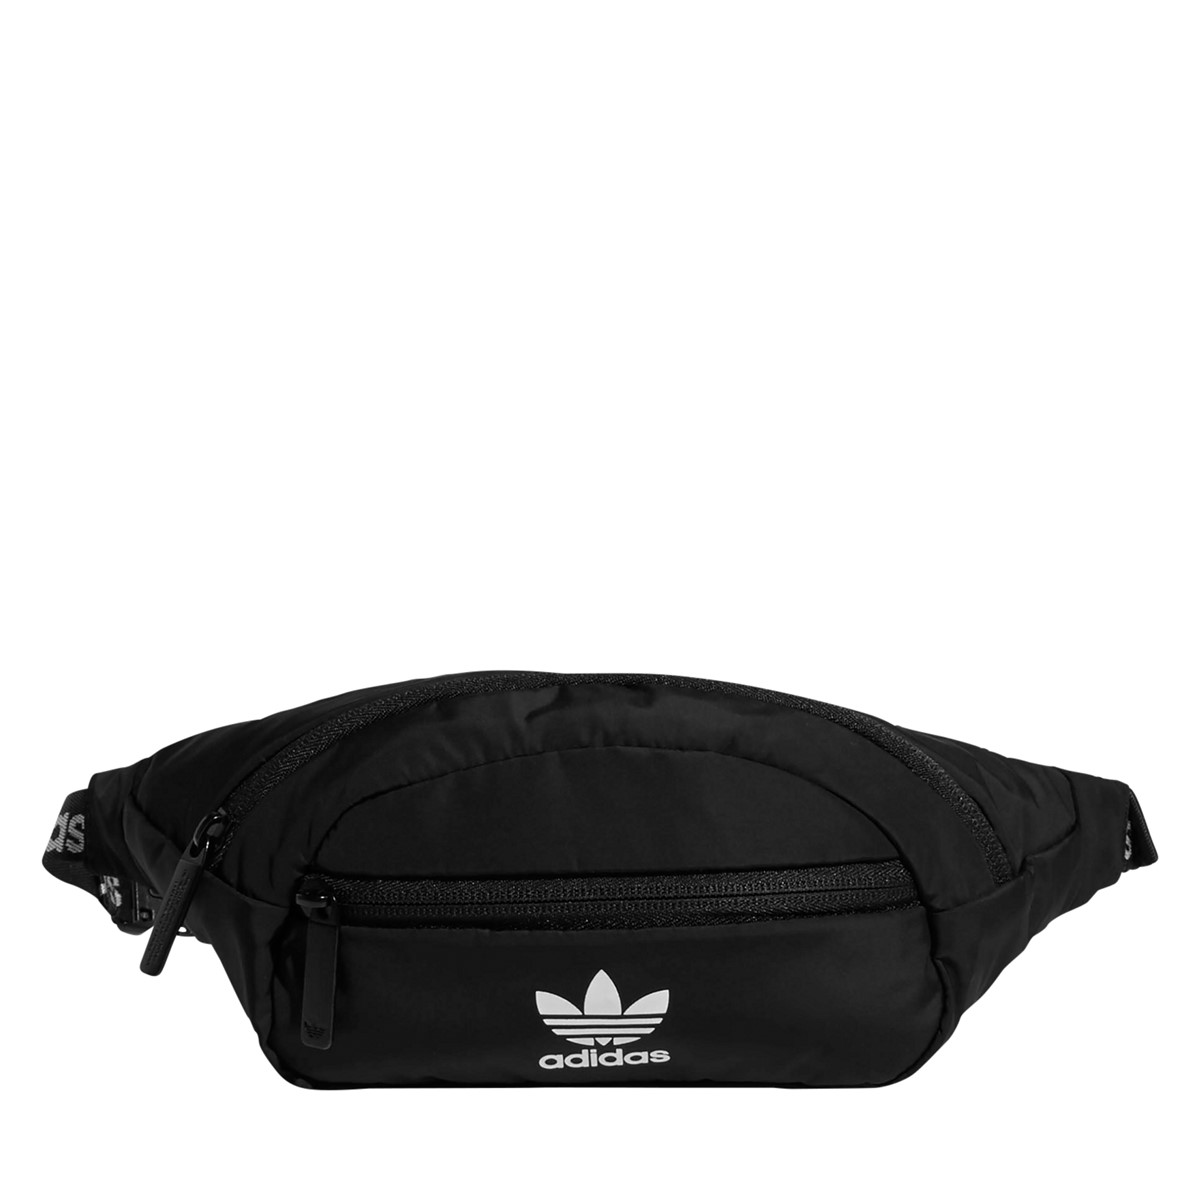 Originals National Waist Pack in Black